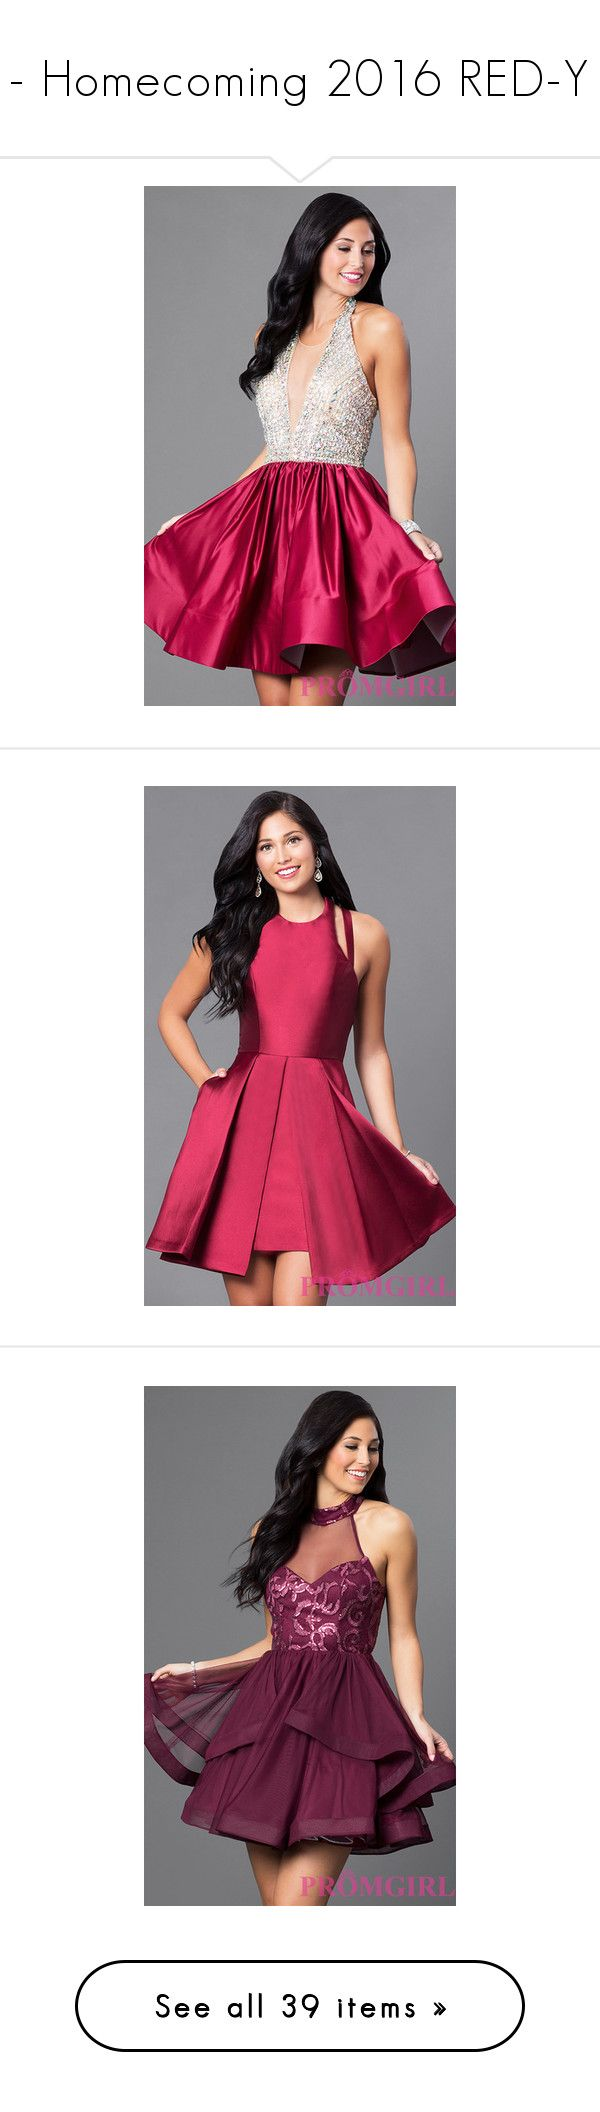 """""""- Homecoming 2016 RED-Y"""" by promgirlxo ❤ liked on Polyvore featuring dresses, plus size evening dresses, plus size formal dresses, pink prom dresses, halter cocktail dress, short prom dresses, short pink dress, faviana dresses, high neck dress and open back dresses"""